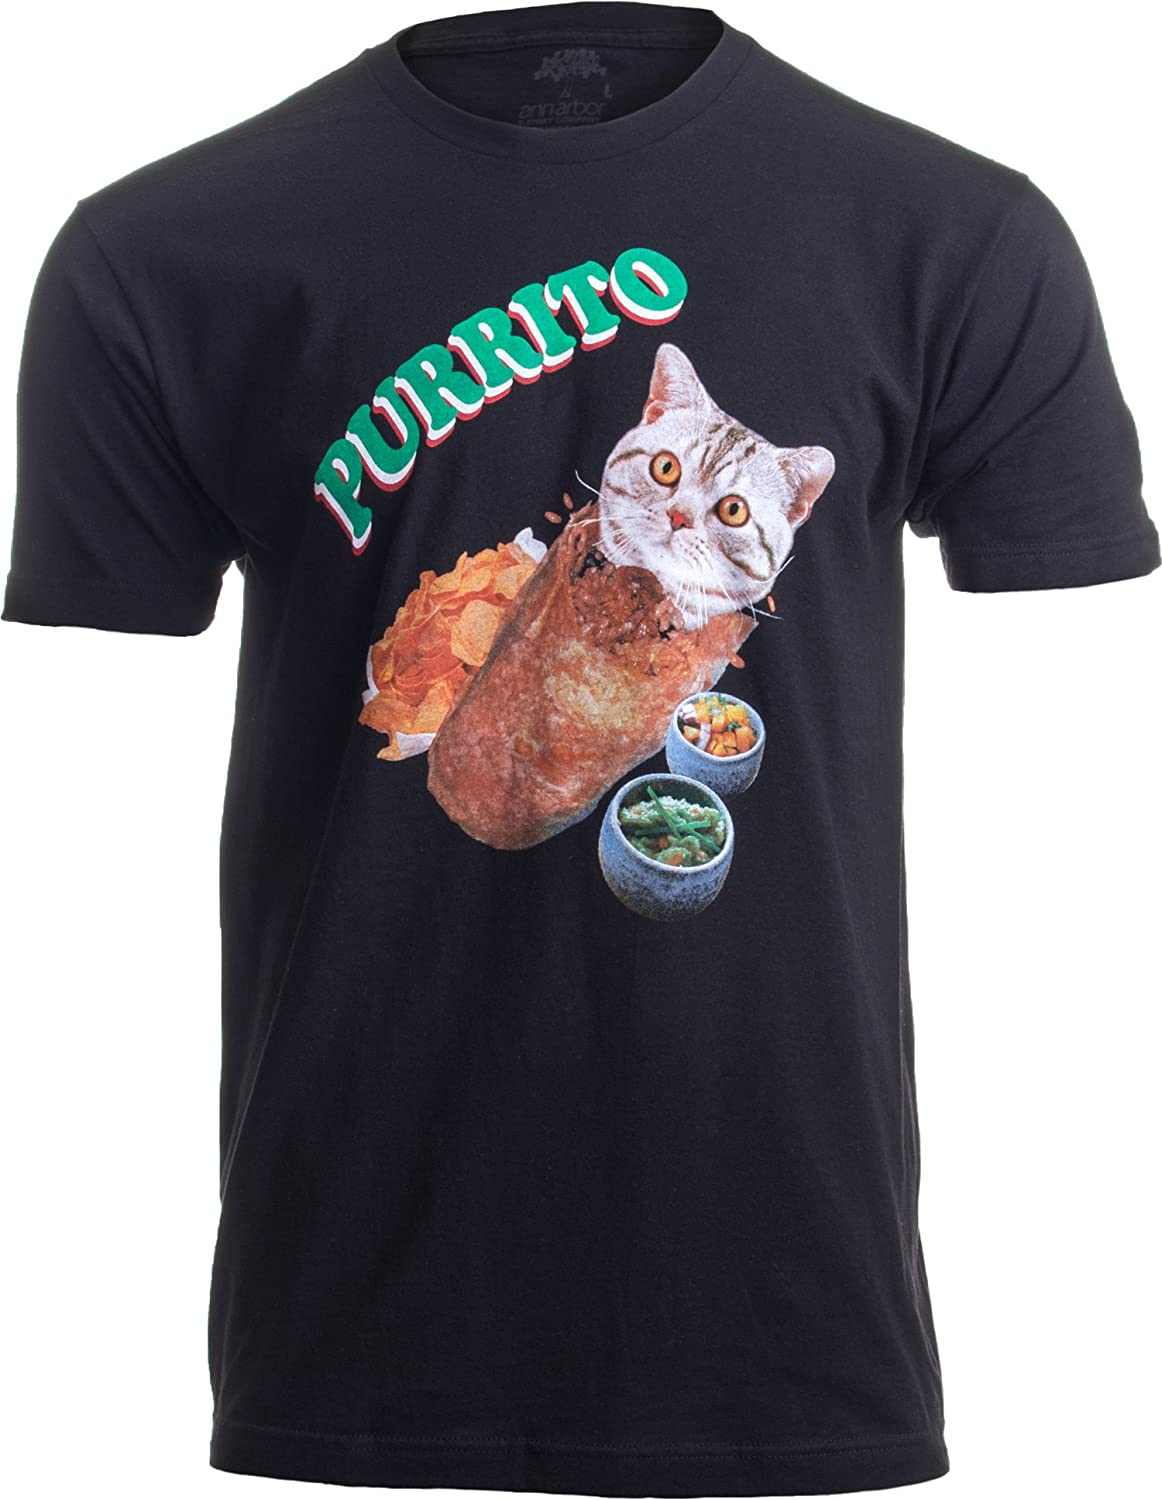 Purrito | Cat in a Burrito Funny Mexican Food Kitty Salsa Guac Kitten T-Shirt